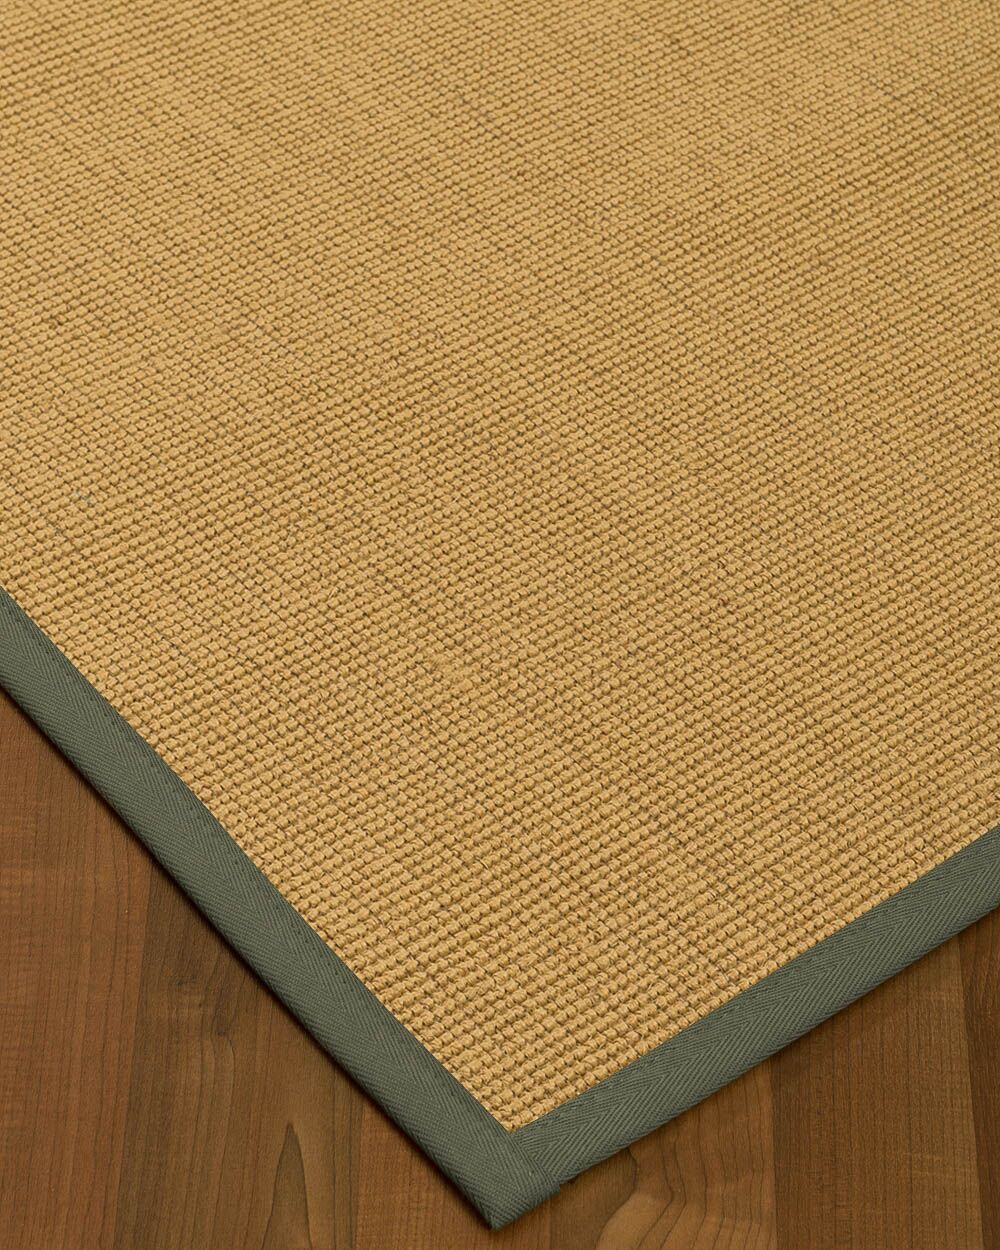 Lanie Hand-Woven Beige Area Rug Rug Size: Rectangle 2' X 3'